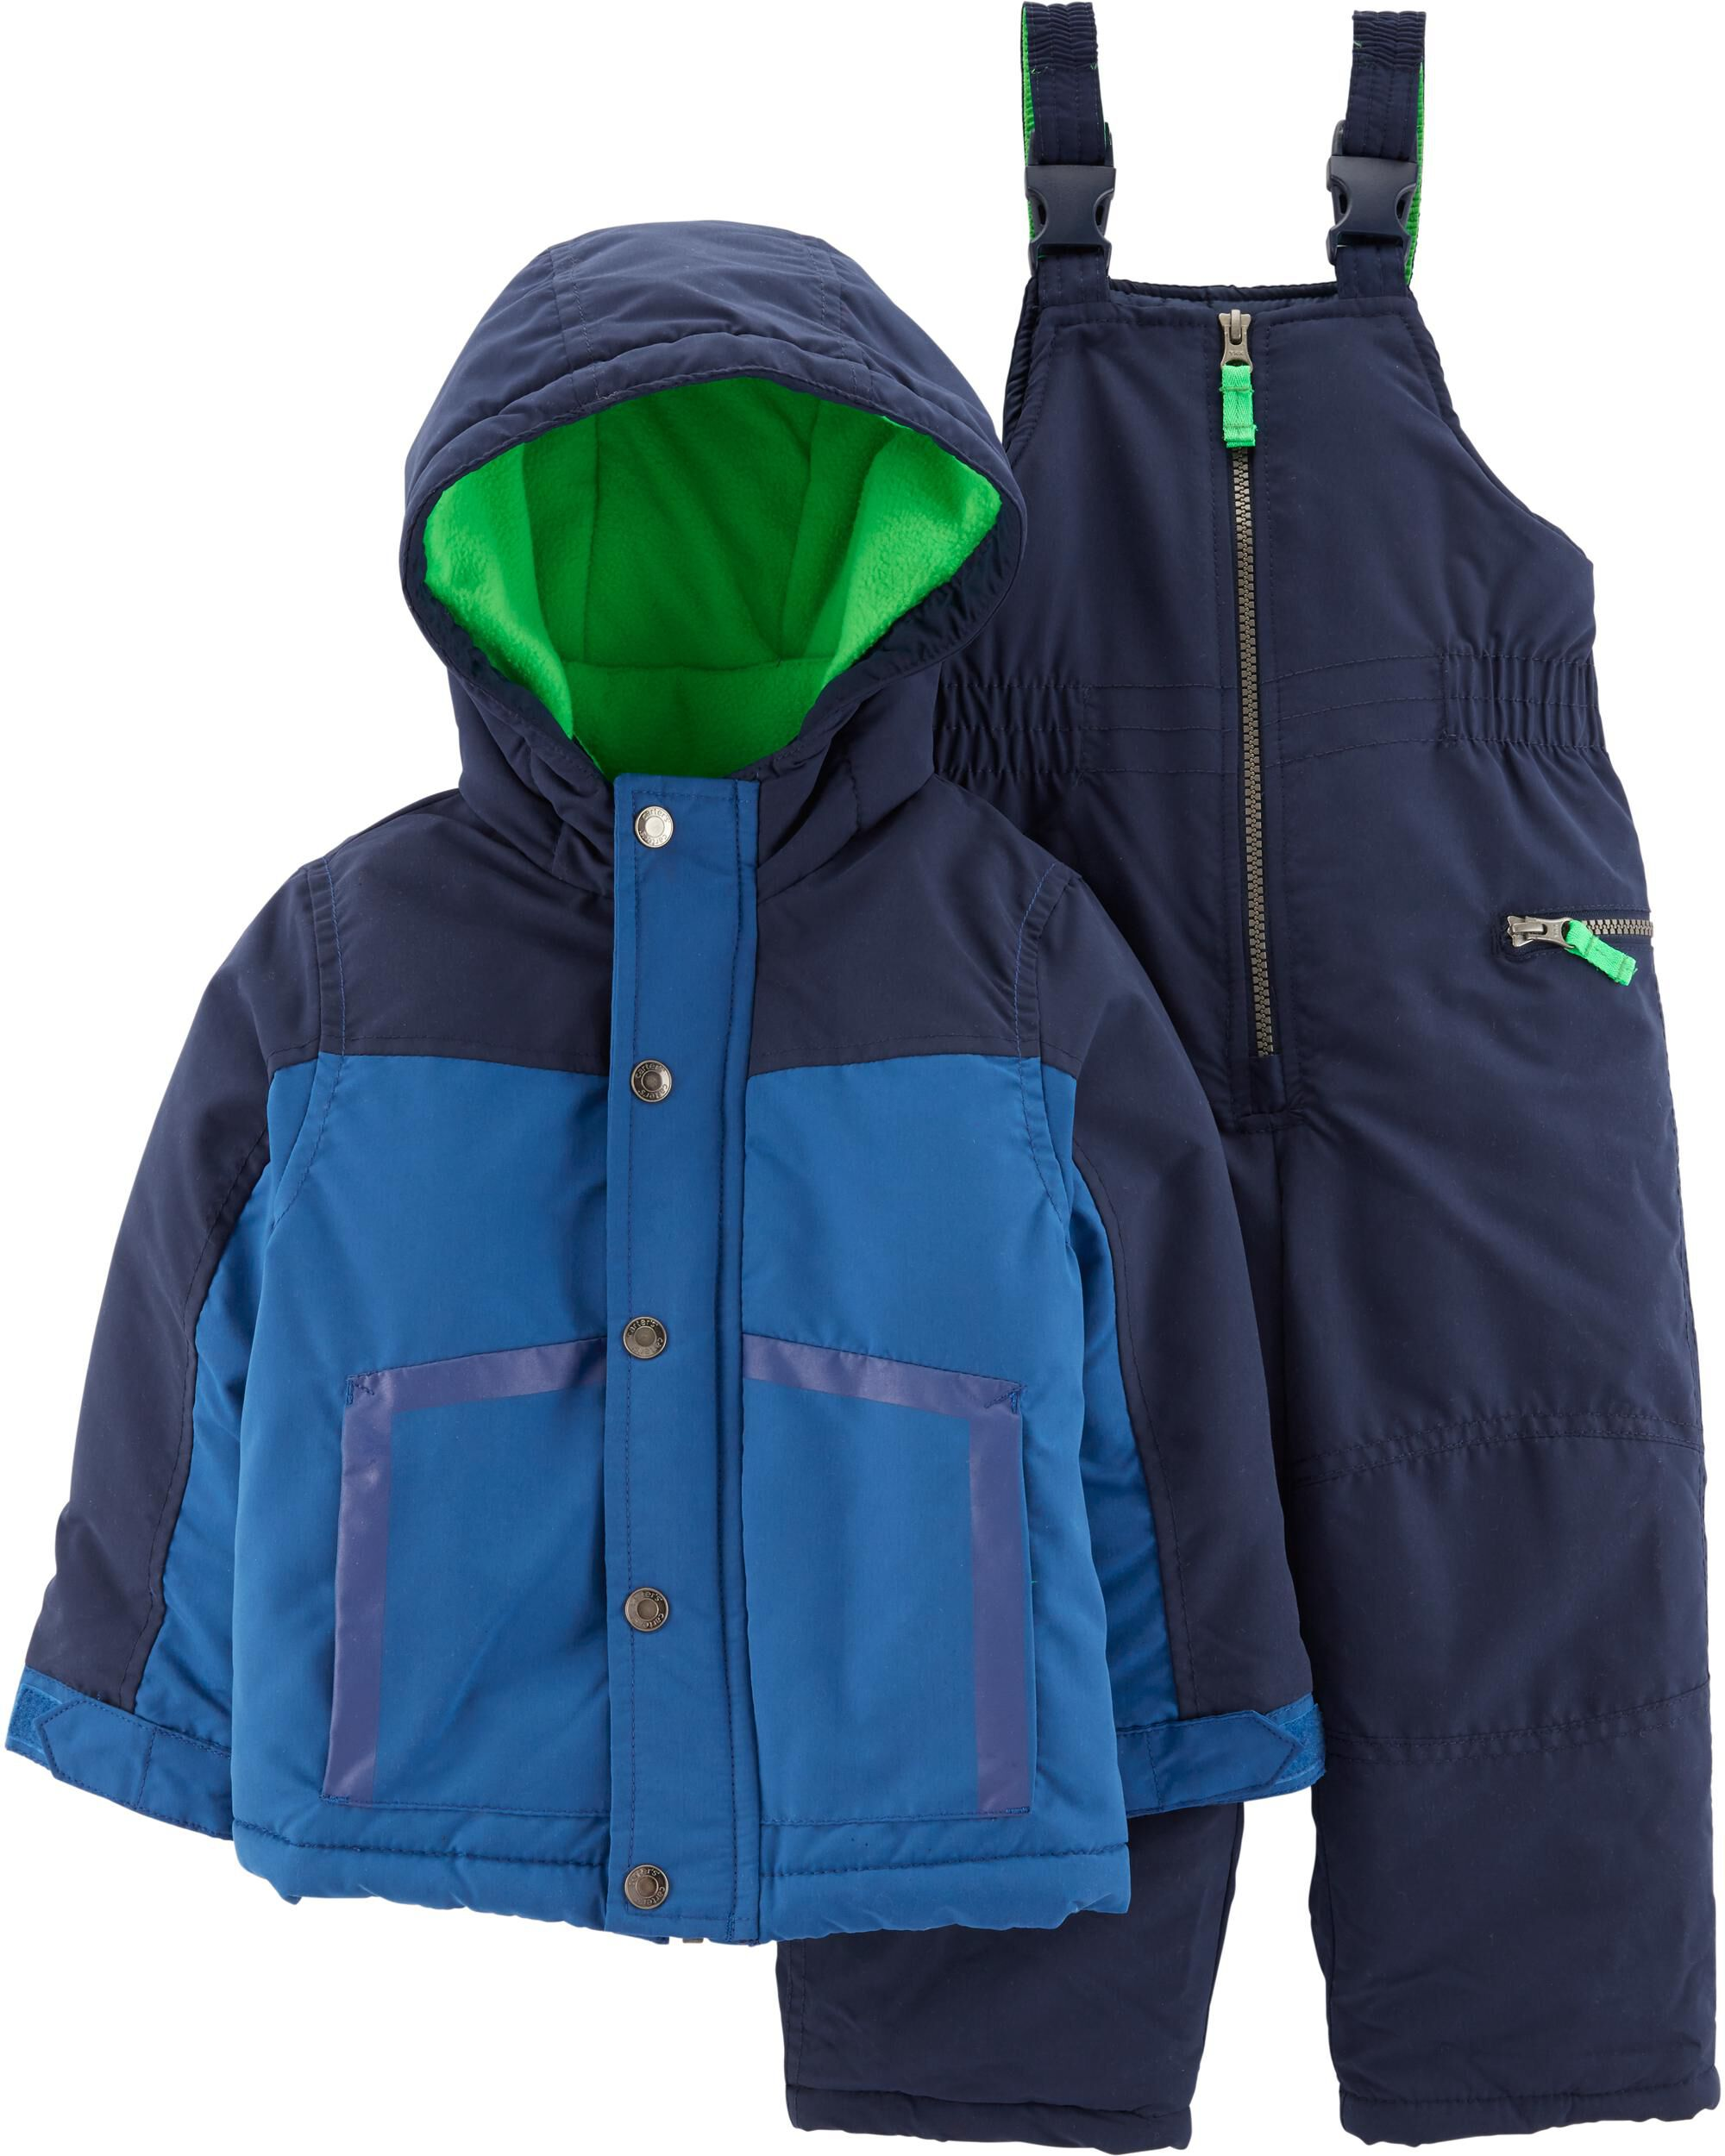 b241786b6 2-Piece Snowsuit Set